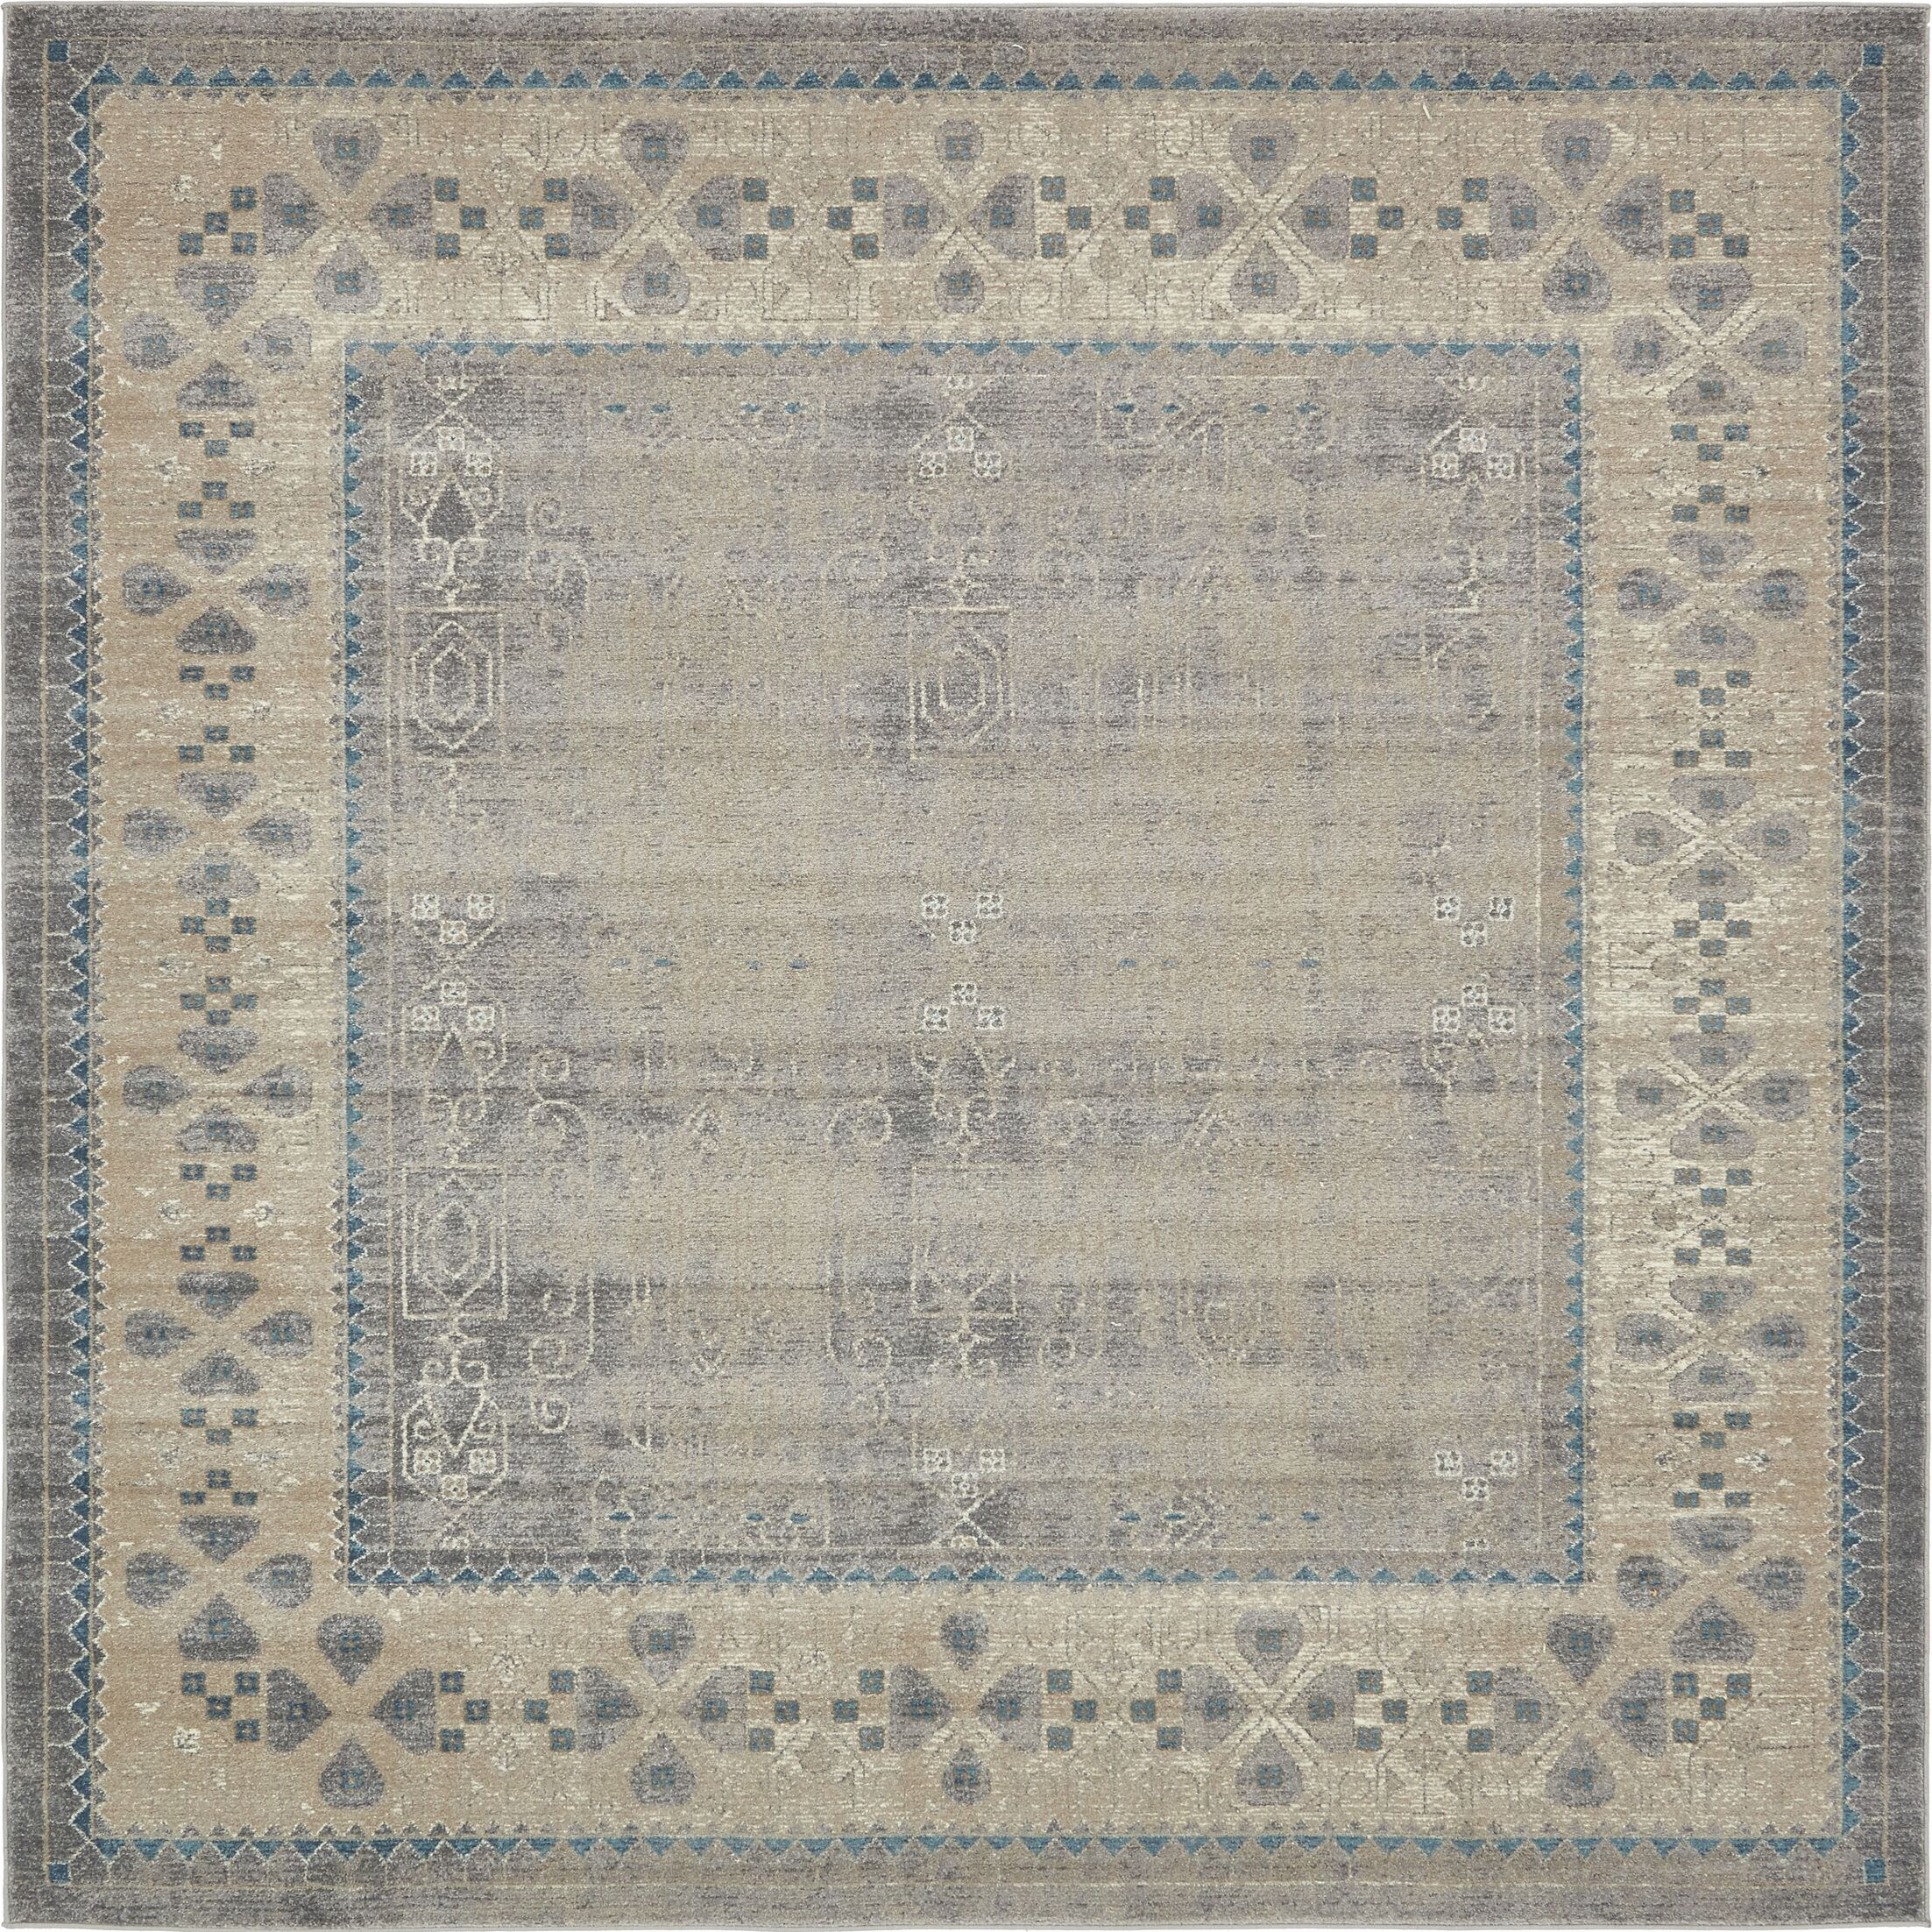 Brierfield Gray Area Rug Rug Size: Square 4' x 4'